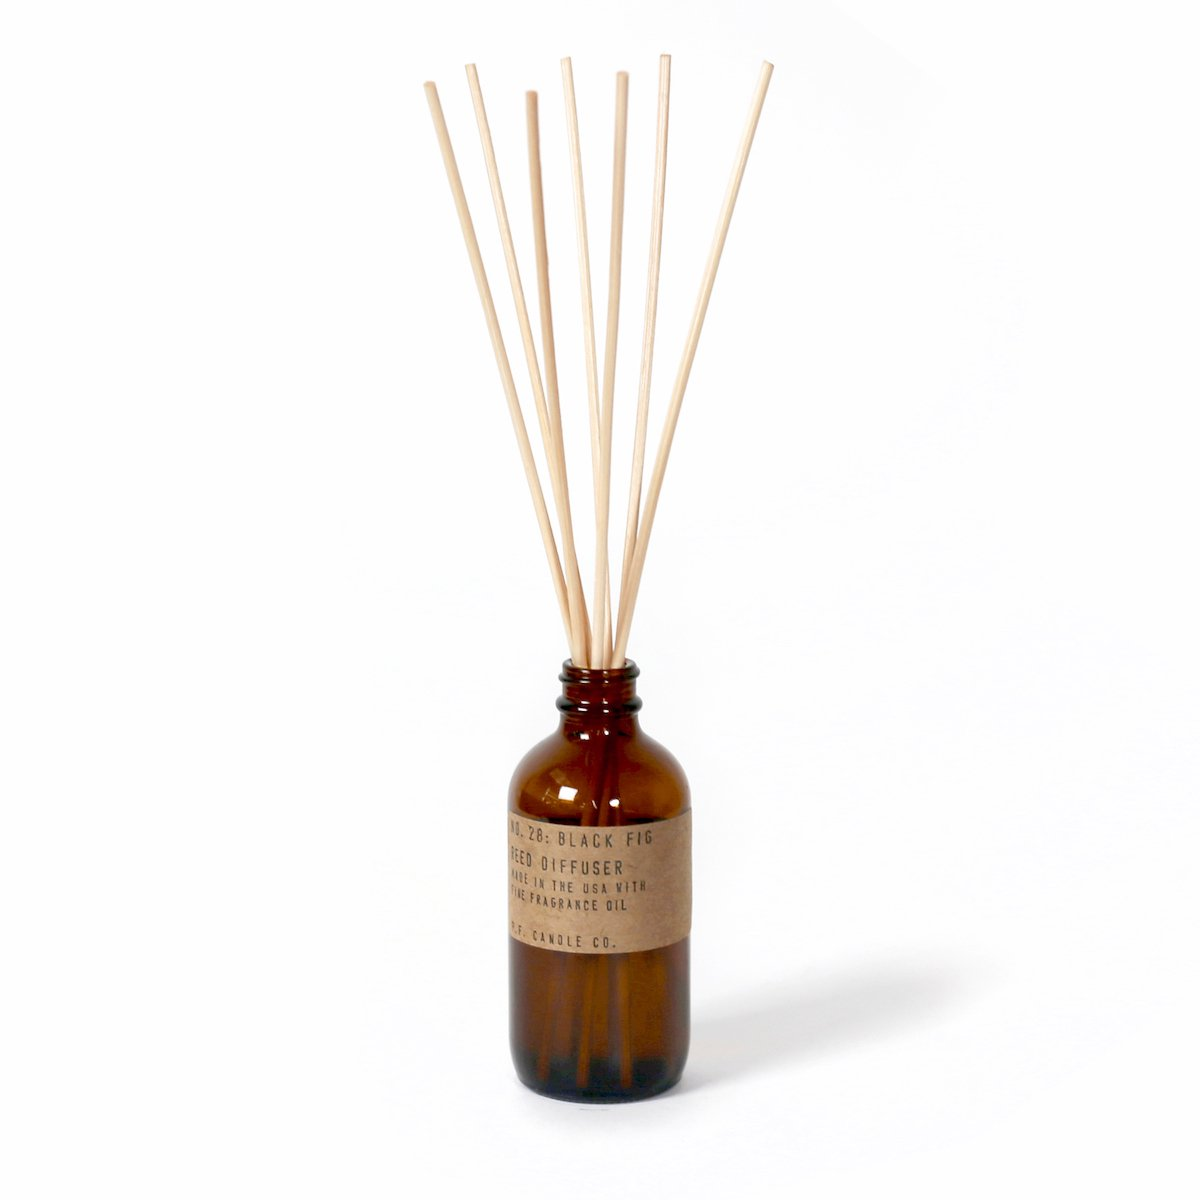 P.F. CANDLE CO.   #Reed Diffuser / 28 BLACK FIG